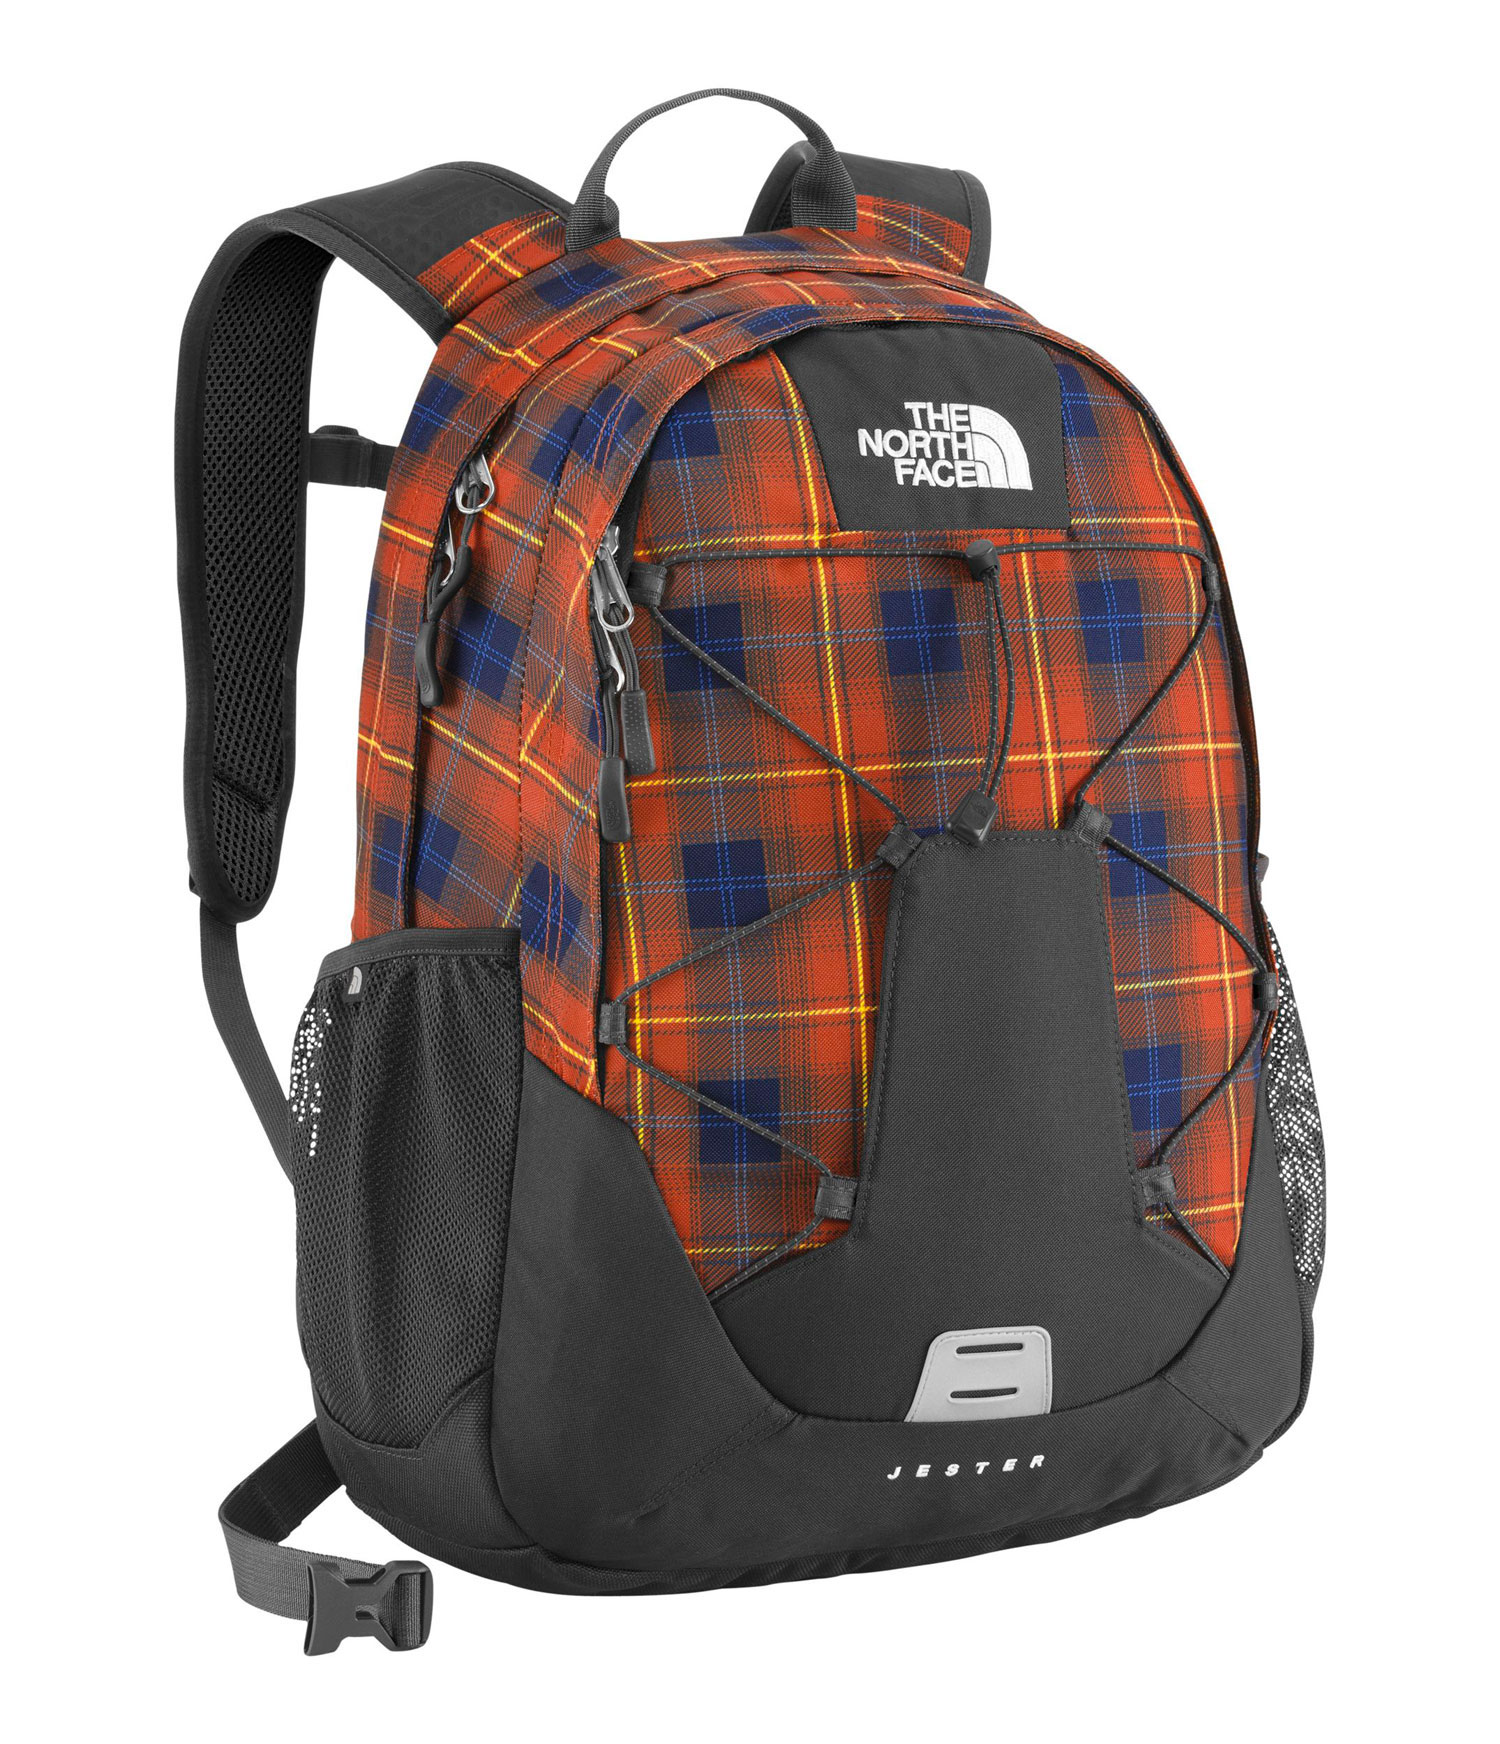 Key Features of The North Face Jester Backpack: Avg Weight: 1 lb 12 oz (794 g) Volume: 1648 in3 (27 liters) Fabric: 600D polyester, 300D mini-ripstop, 1200D polyester FlexVent ™ injection-molded shoulder straps Comfortable, stitched foam back panel Removable hipbelt Large main compartment fits books and binders Secondary compartment with organization Mesh side water bottle pockets - $48.95